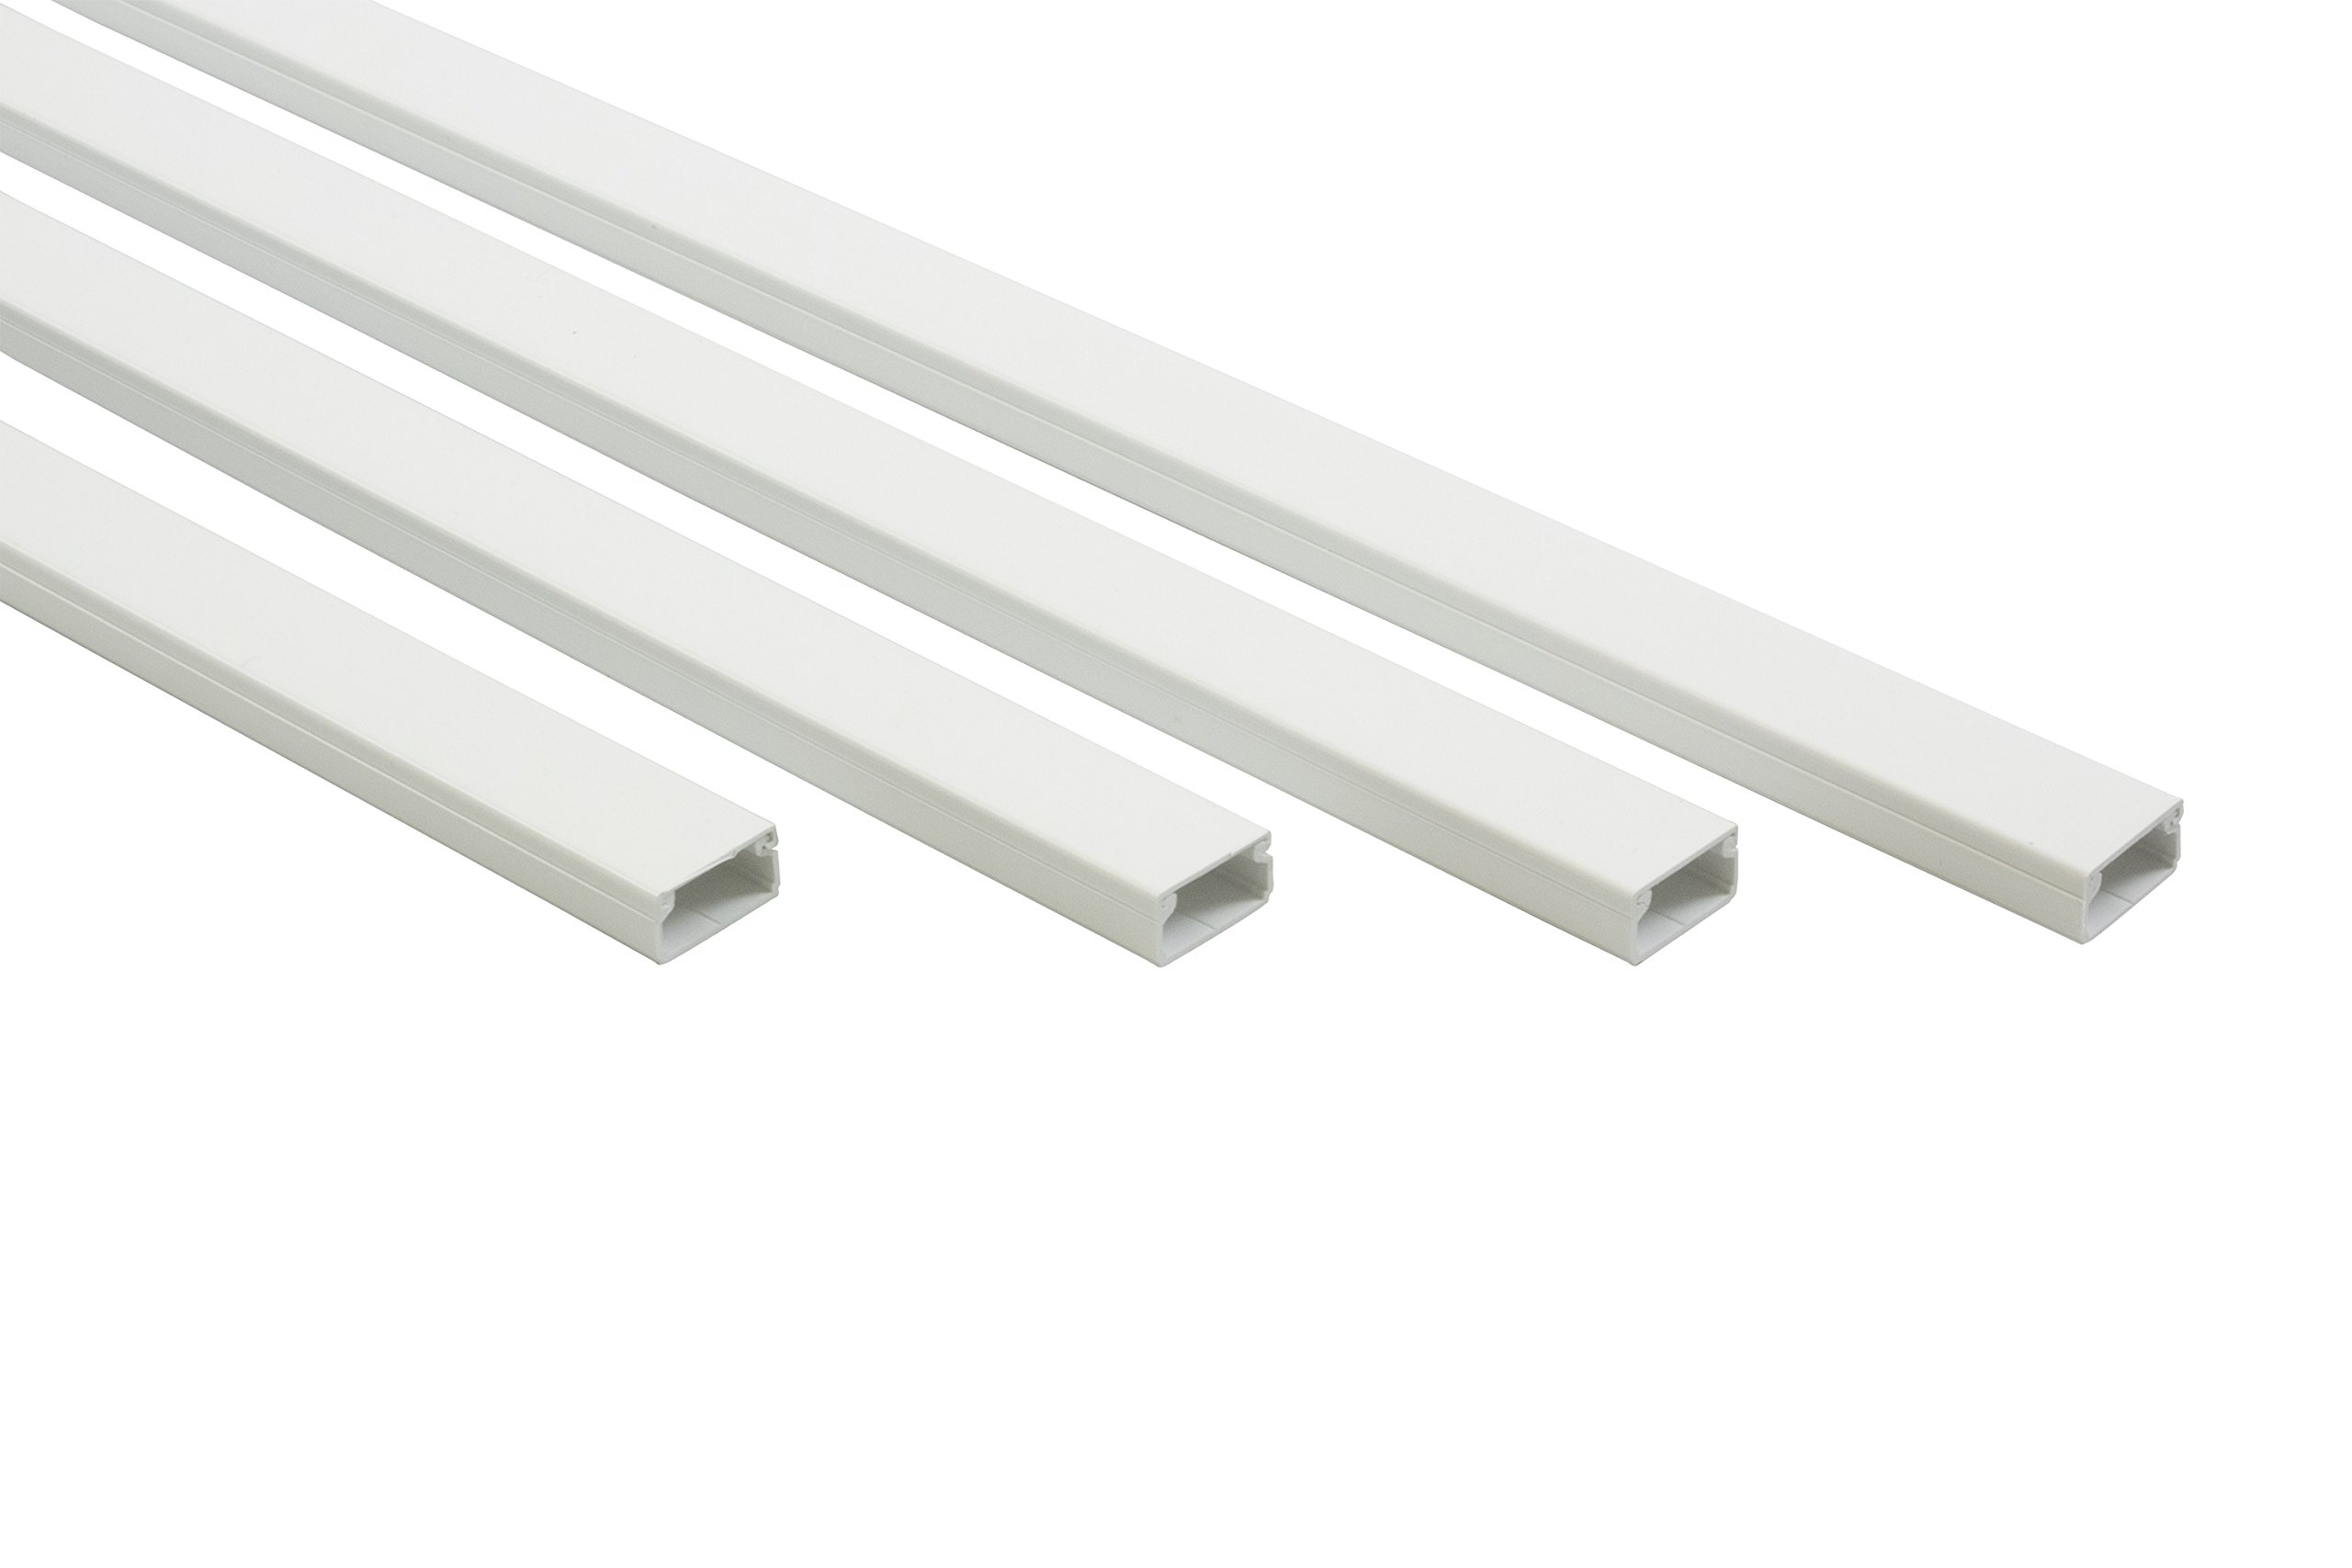 16 ft Cable Raceway Kit for Concealing and Cord Organizing - White - 0.78x0.39inch 4STRIPSx48Inches by Famatel (Image #1)